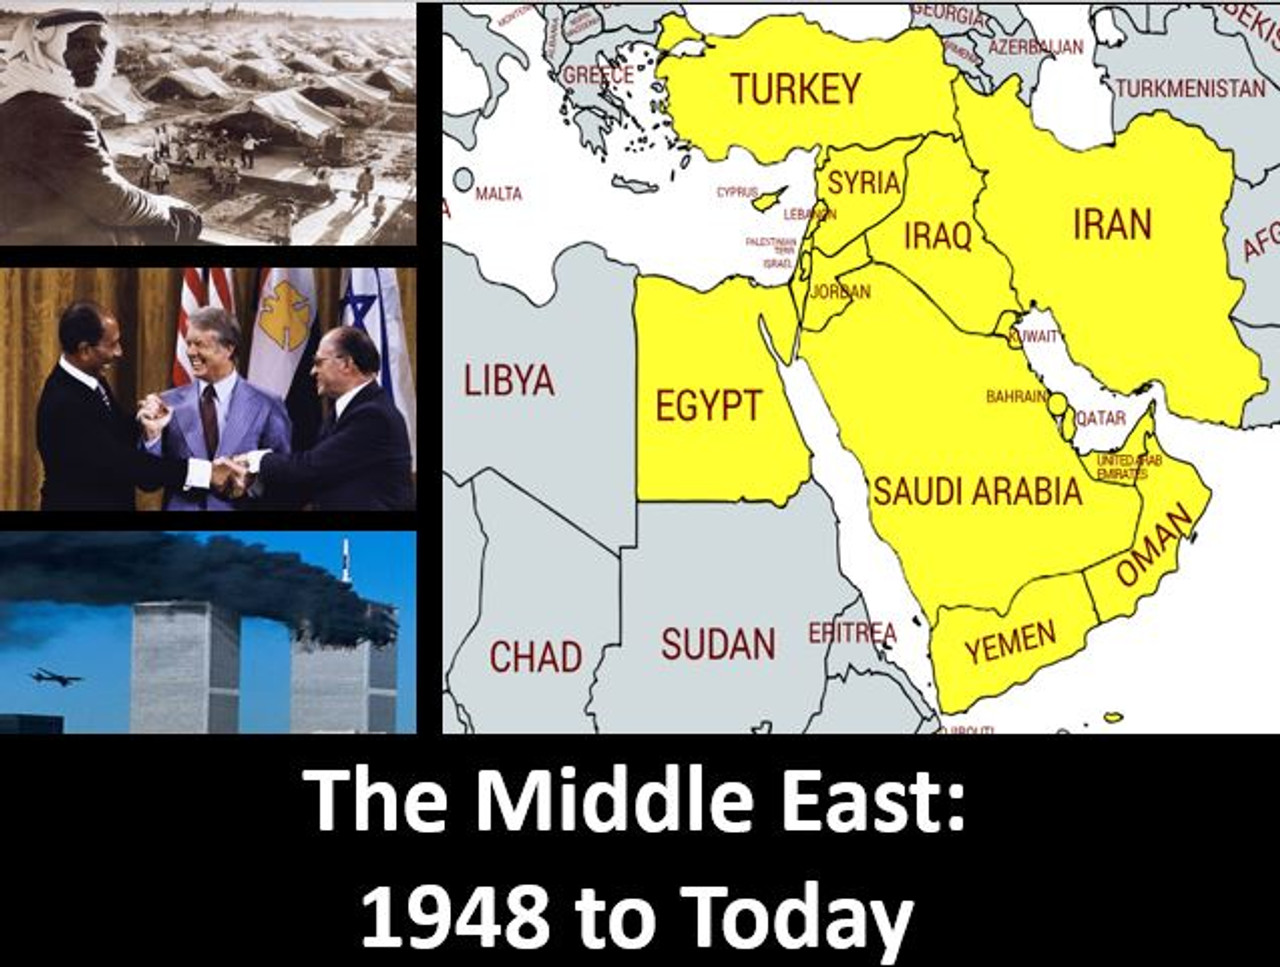 medium resolution of The Middle East \u0026 the World: 1948 to Today: Power Point